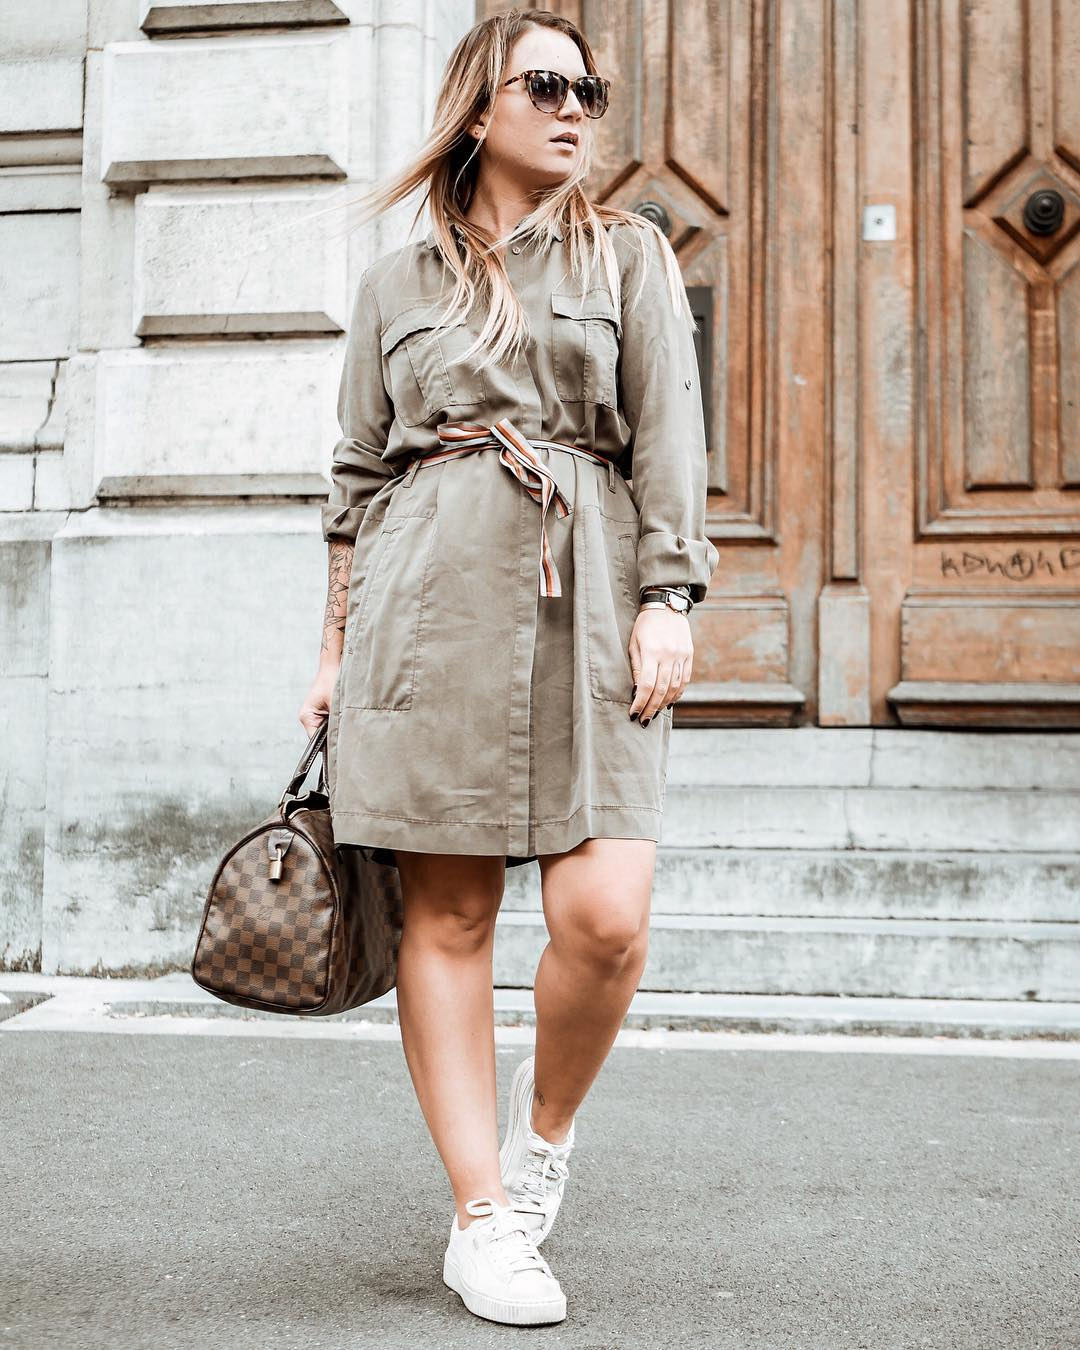 lyocell dress de IKKS sur __maryb__